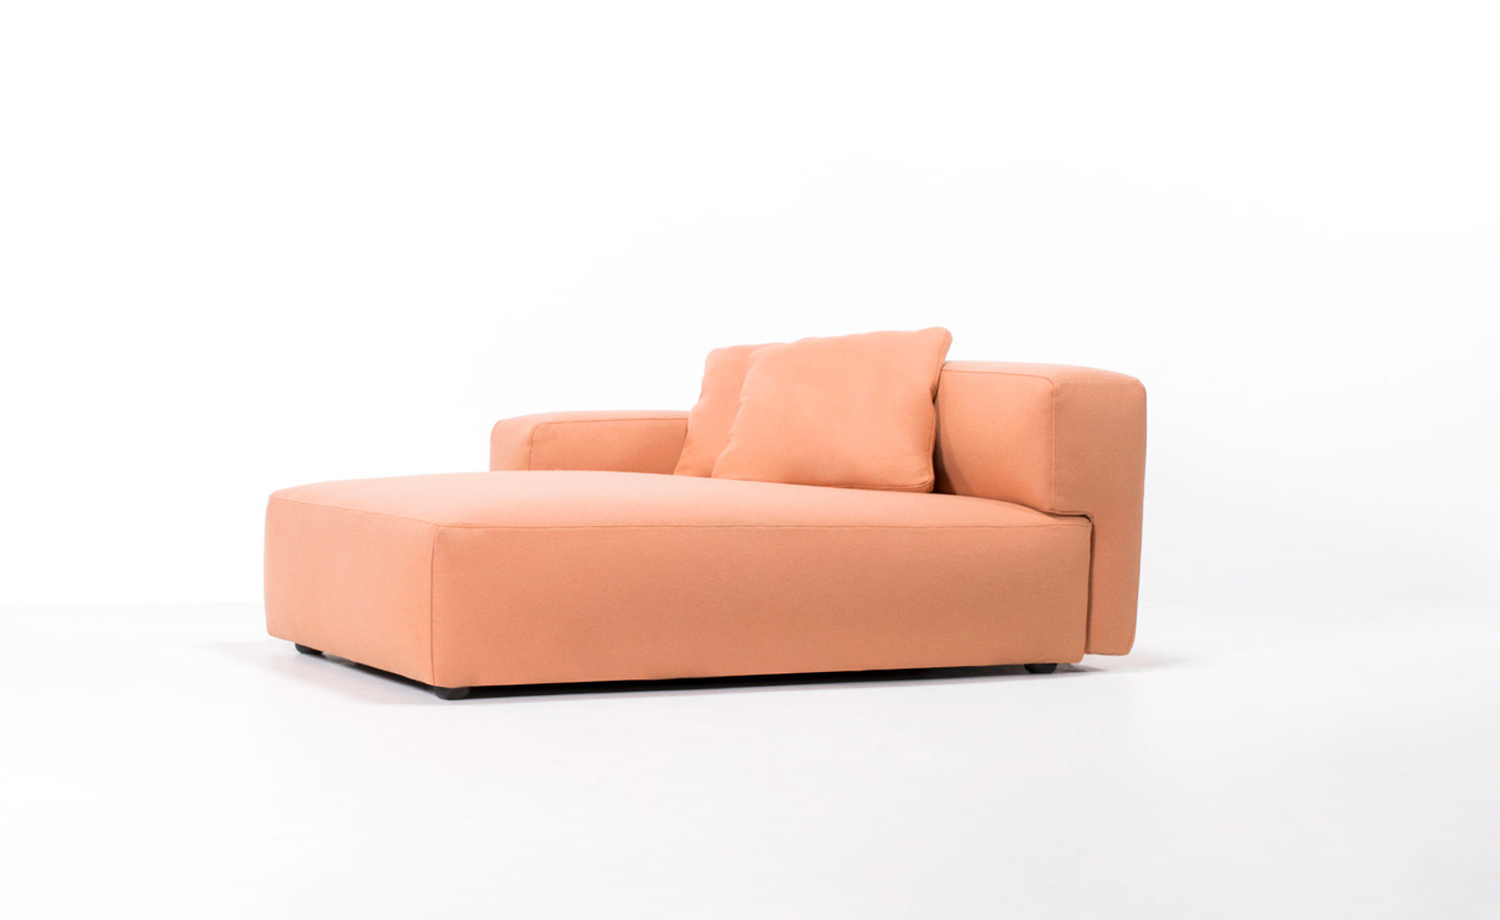 EXPO chaise longue LAF image #9